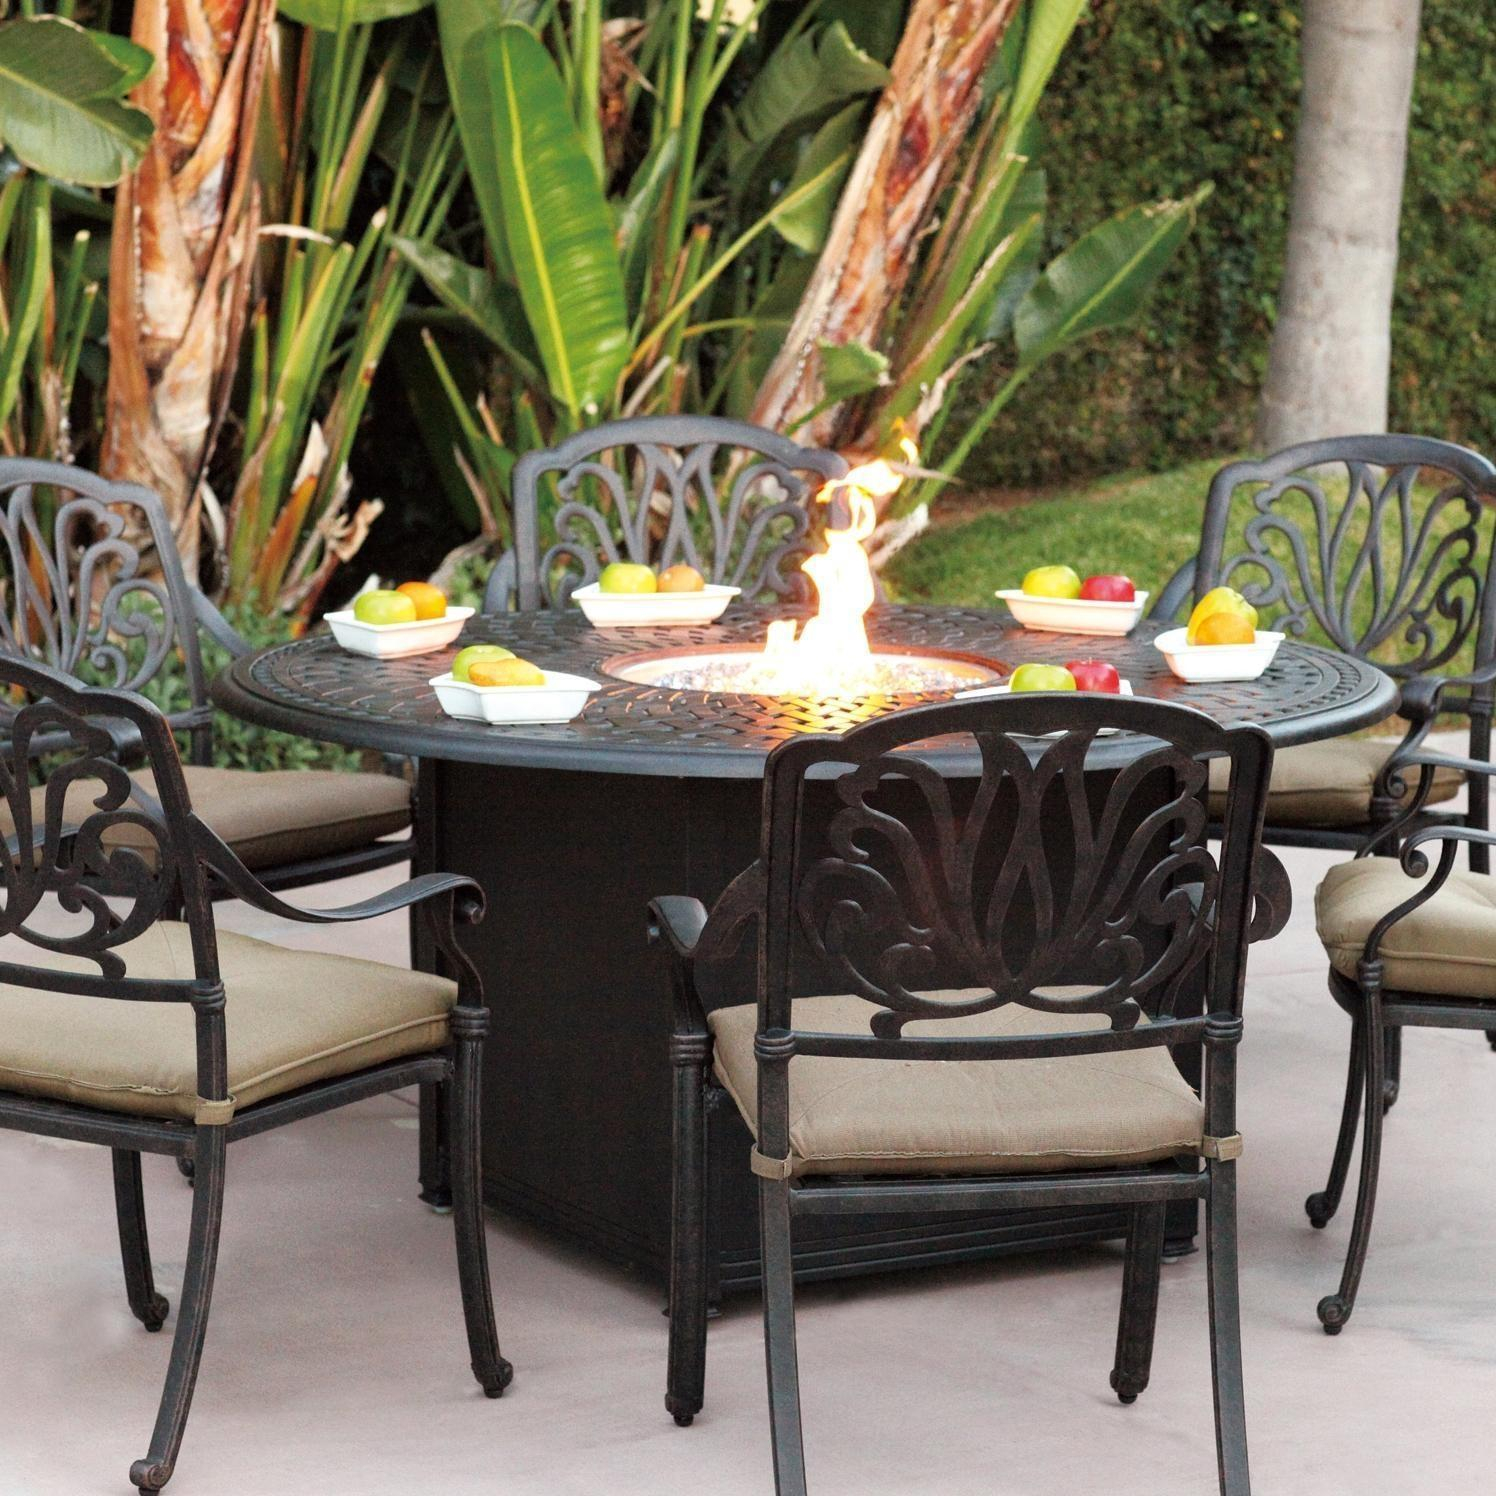 Darlee Elisabeth 7 Piece Cast Aluminum Patio Fire Pit Dining Set intended for dimensions 1496 X 1496